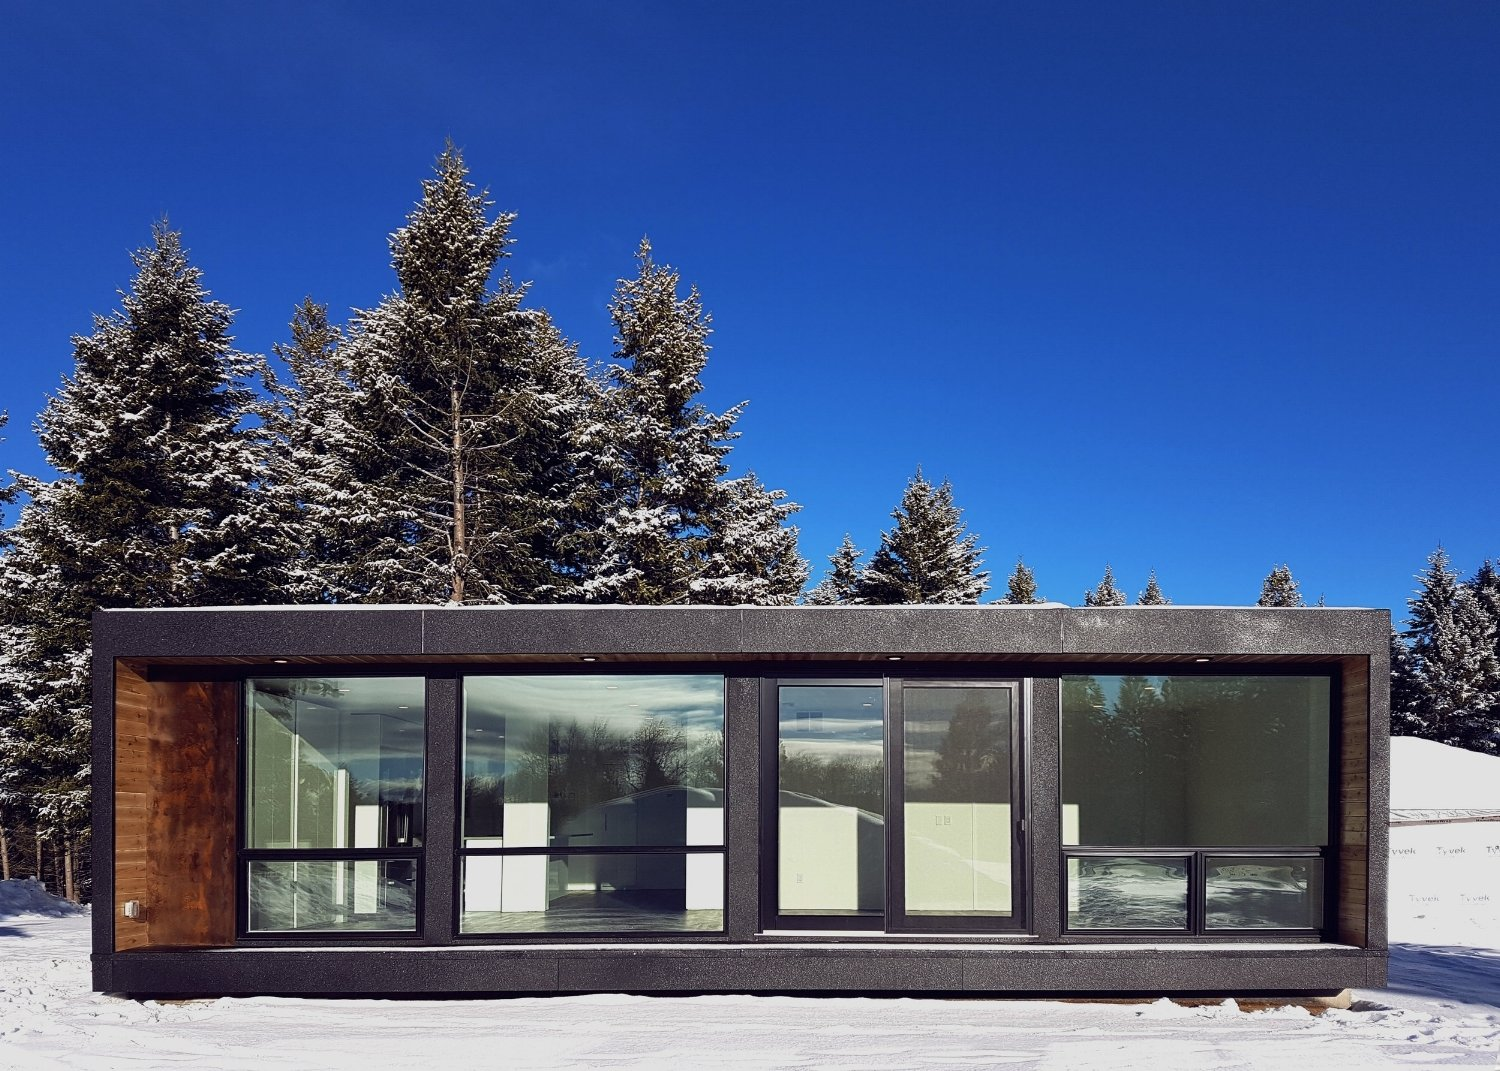 photo 3 of 11 in 10 shipping container homes you can buy right now